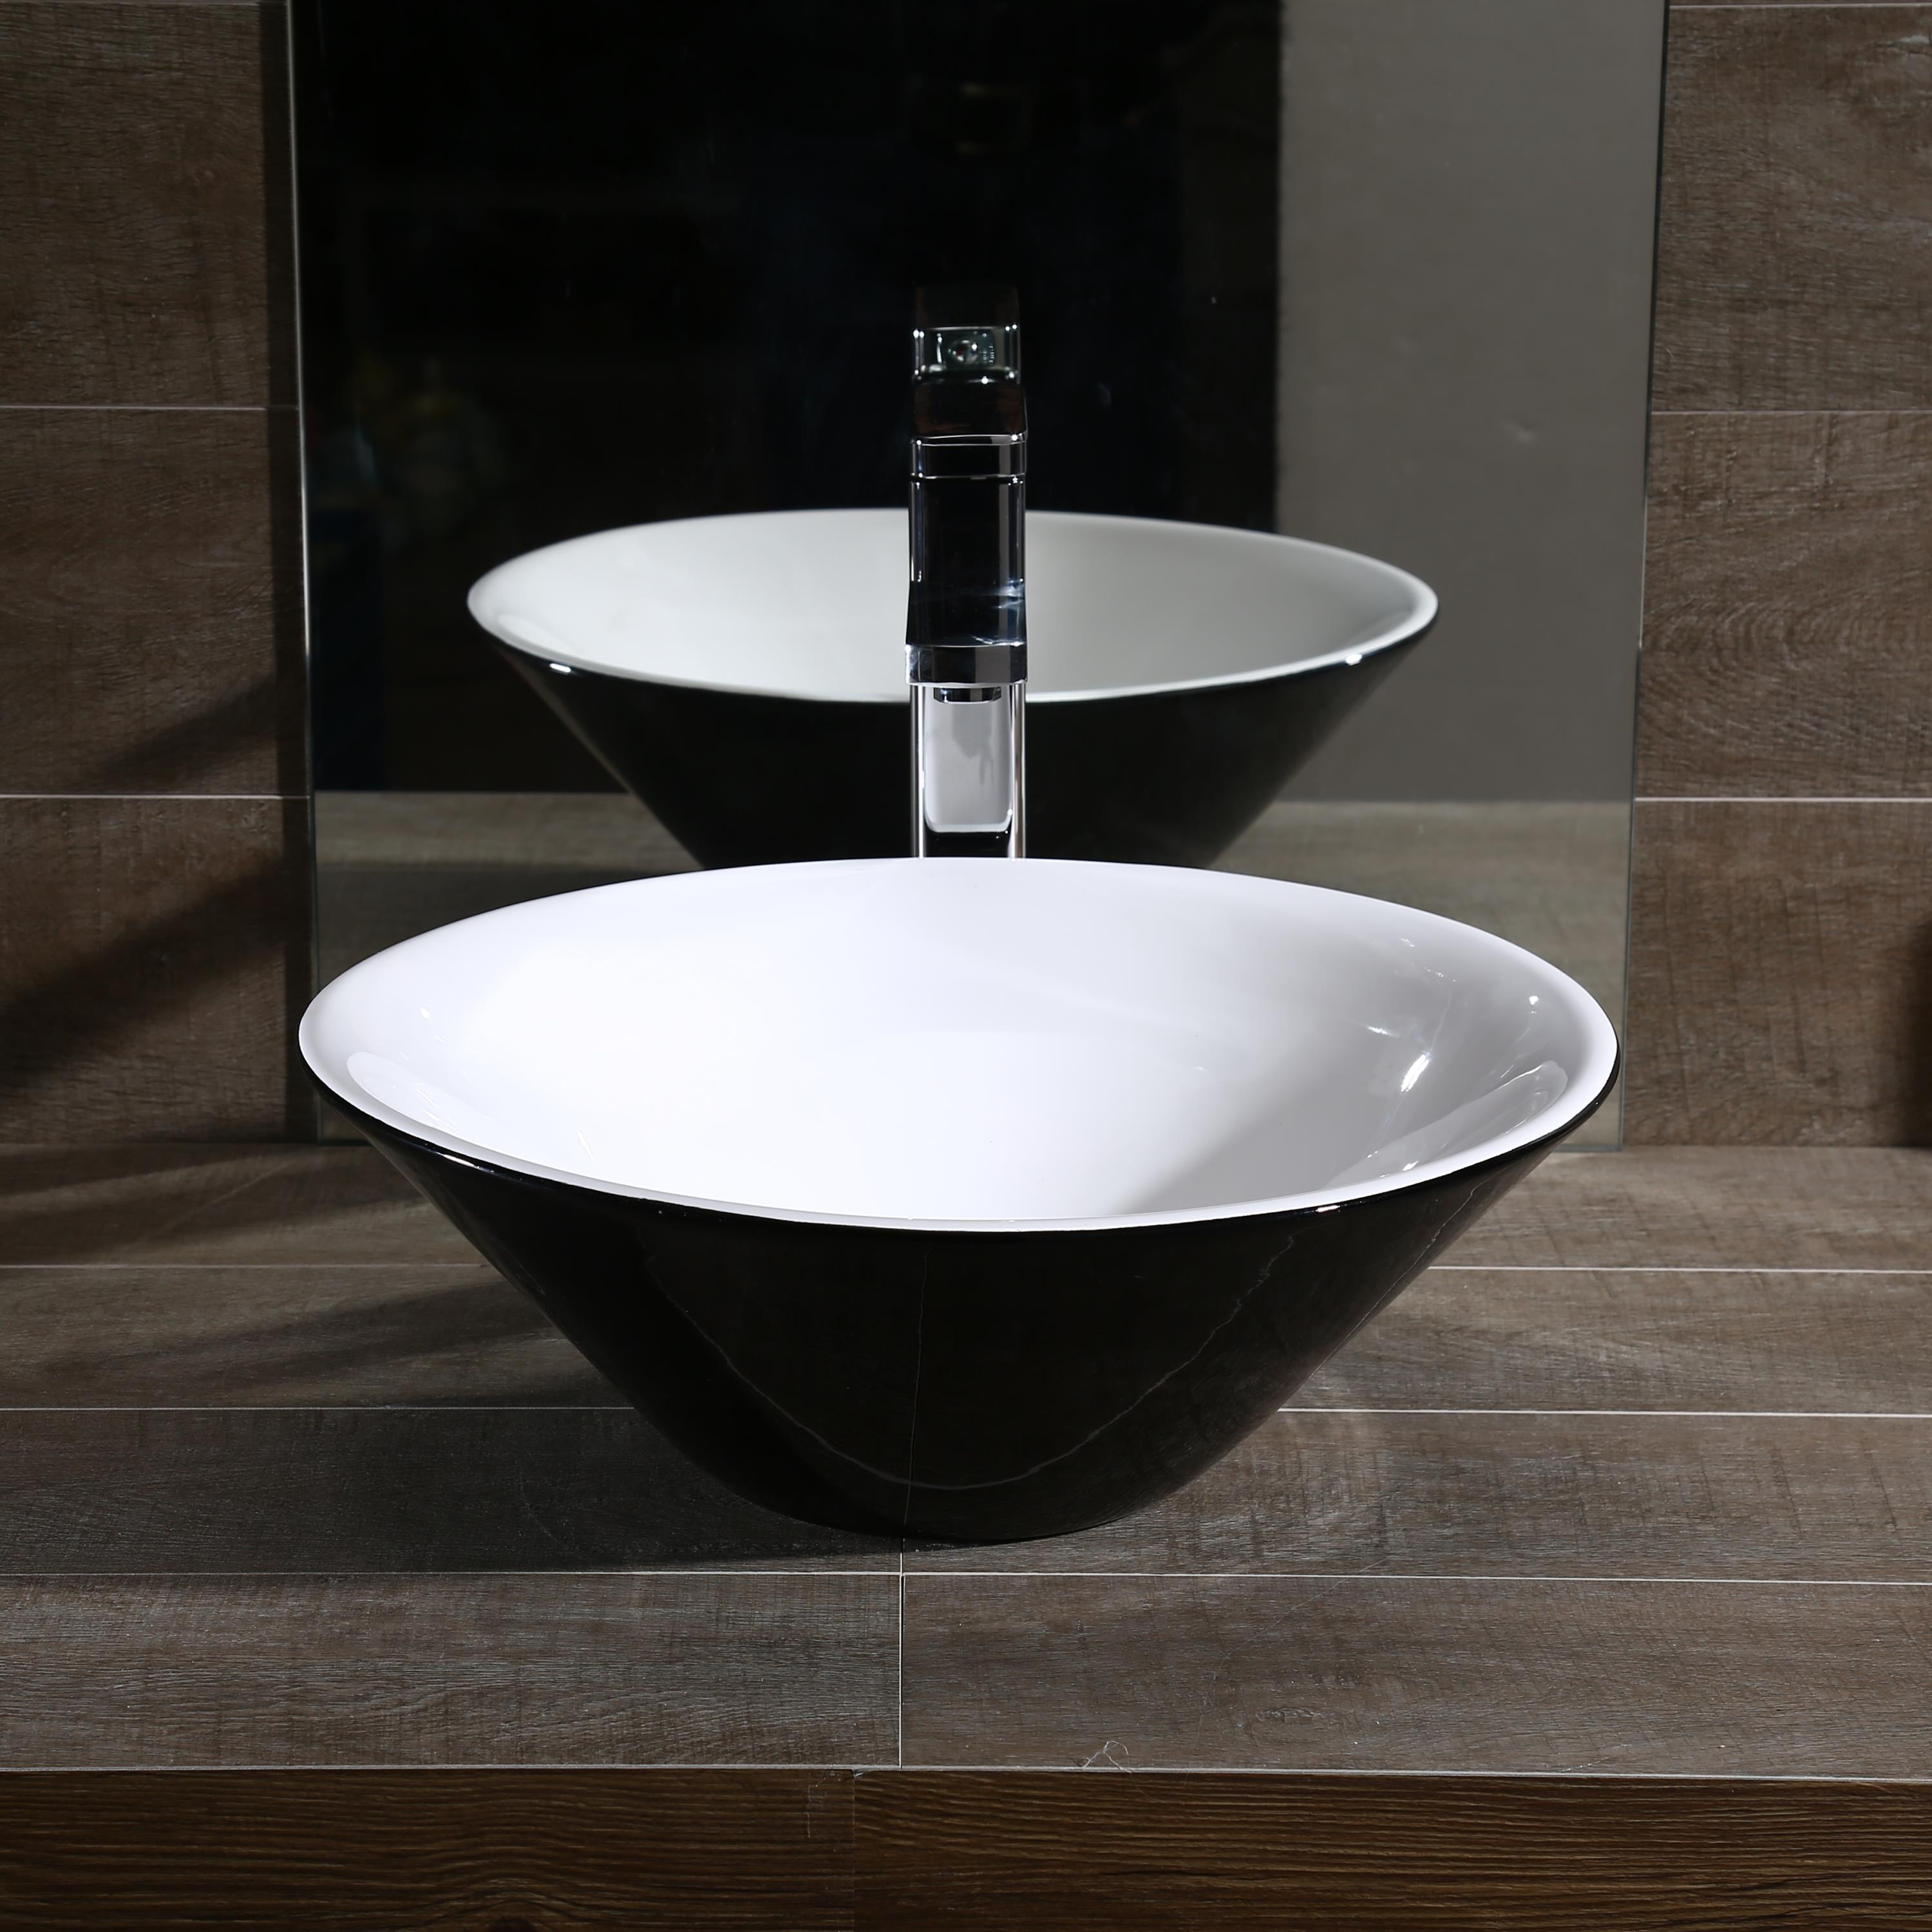 New Simple Porcelain Round Above Counter Top Bathroom ...